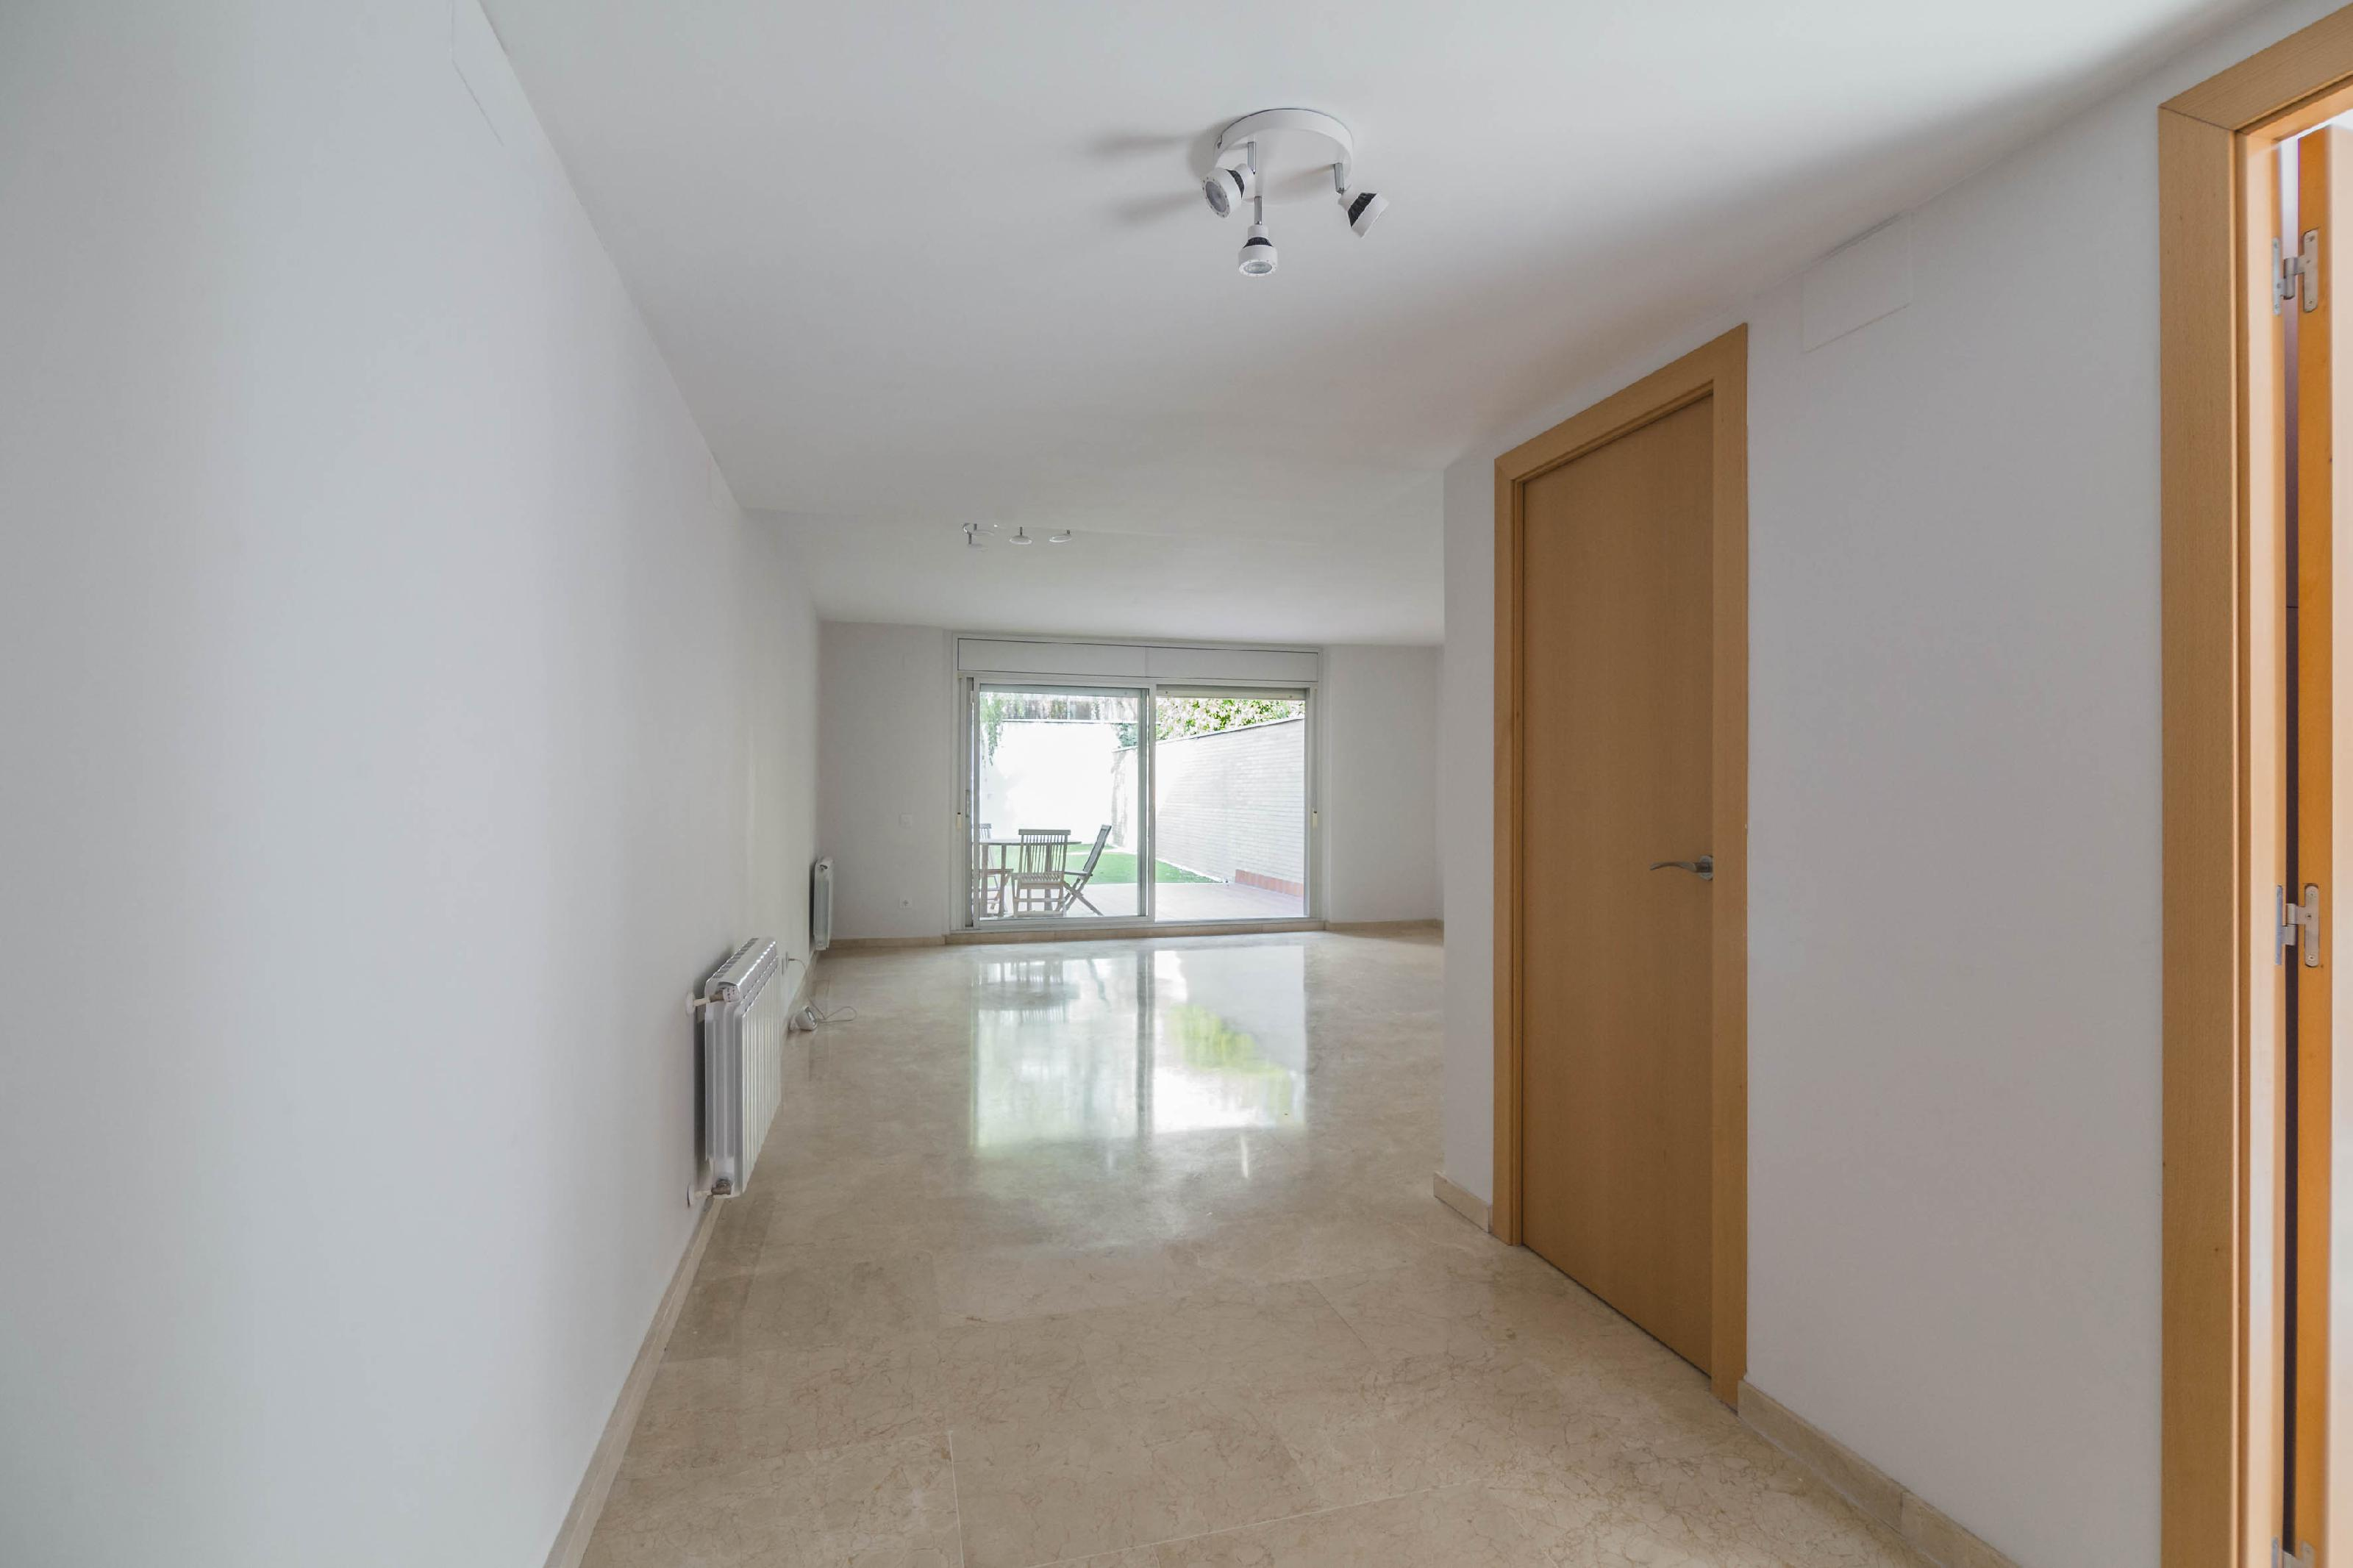 234378 Duplex for sale in Sant Martí, Diagonal Mar and Front Marítim PN 4